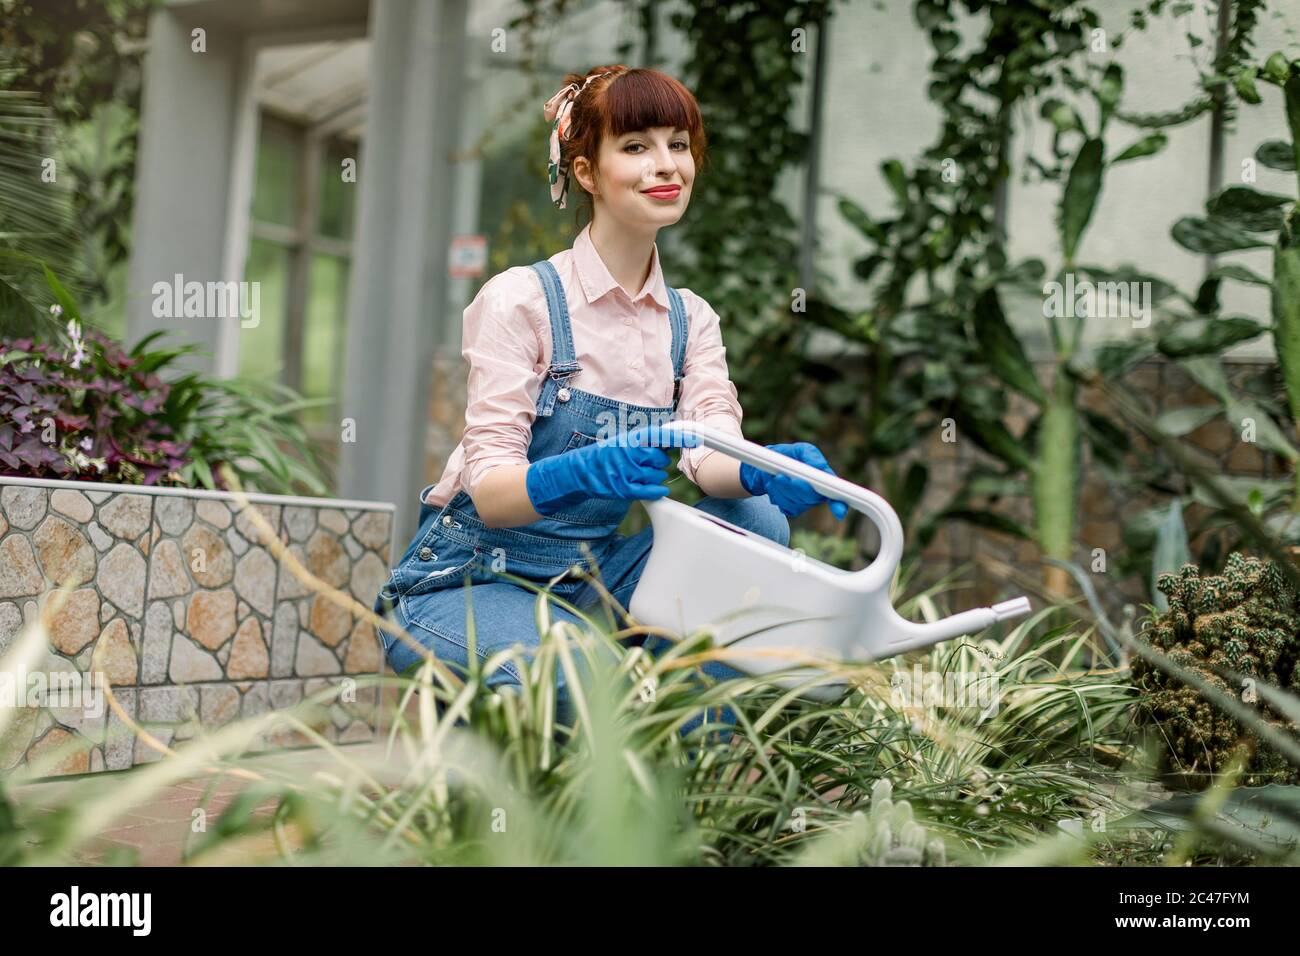 Young beautiful woman in protective gloves and overalls, watering plants in her home garden or in a greenhouse, smiling and looking at the camera Stock Photo